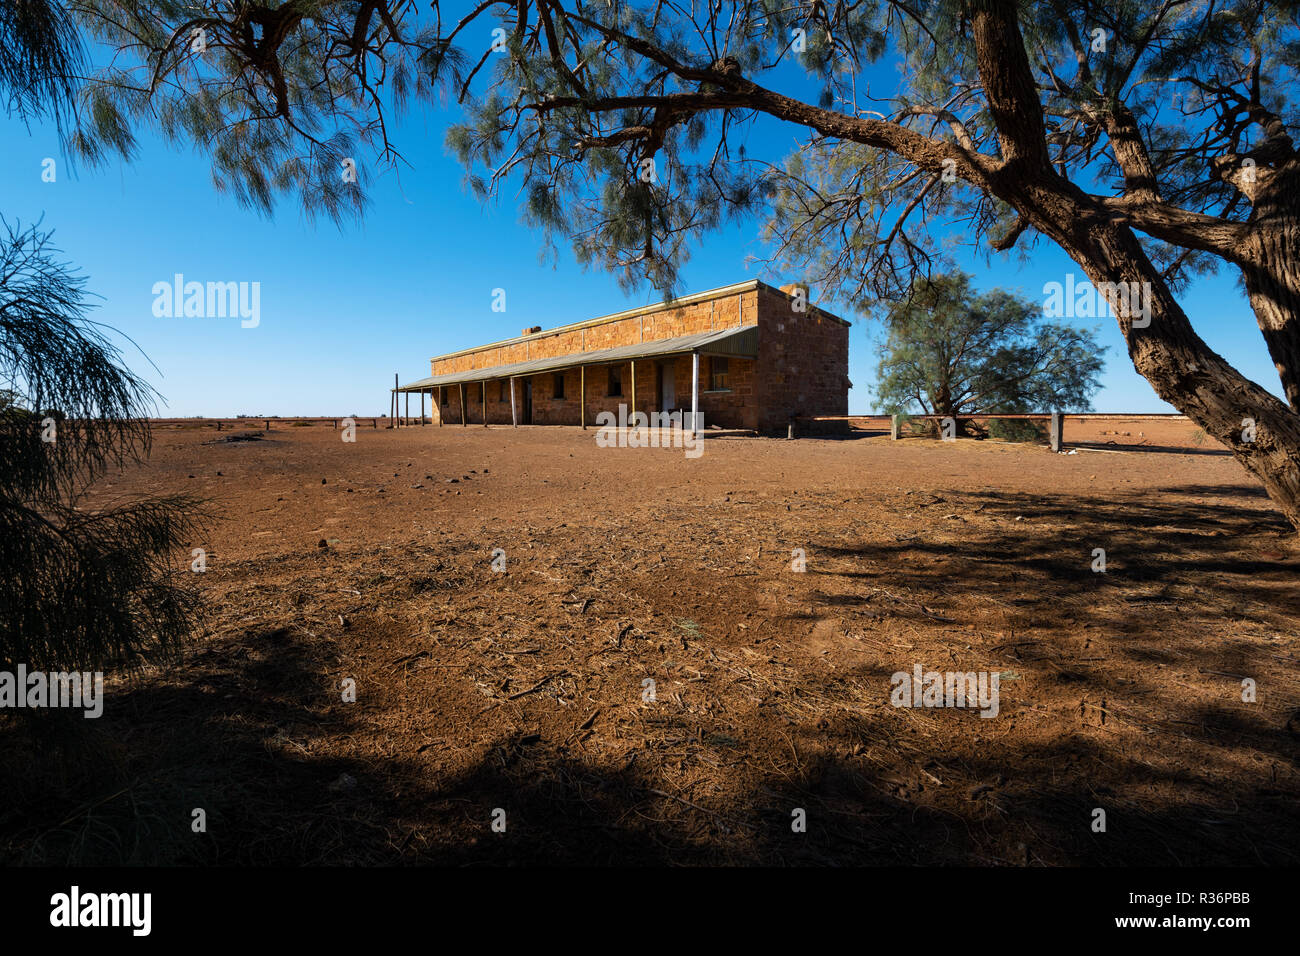 Historic Beresford Siding at the famous Oodnadatta Track. - Stock Image